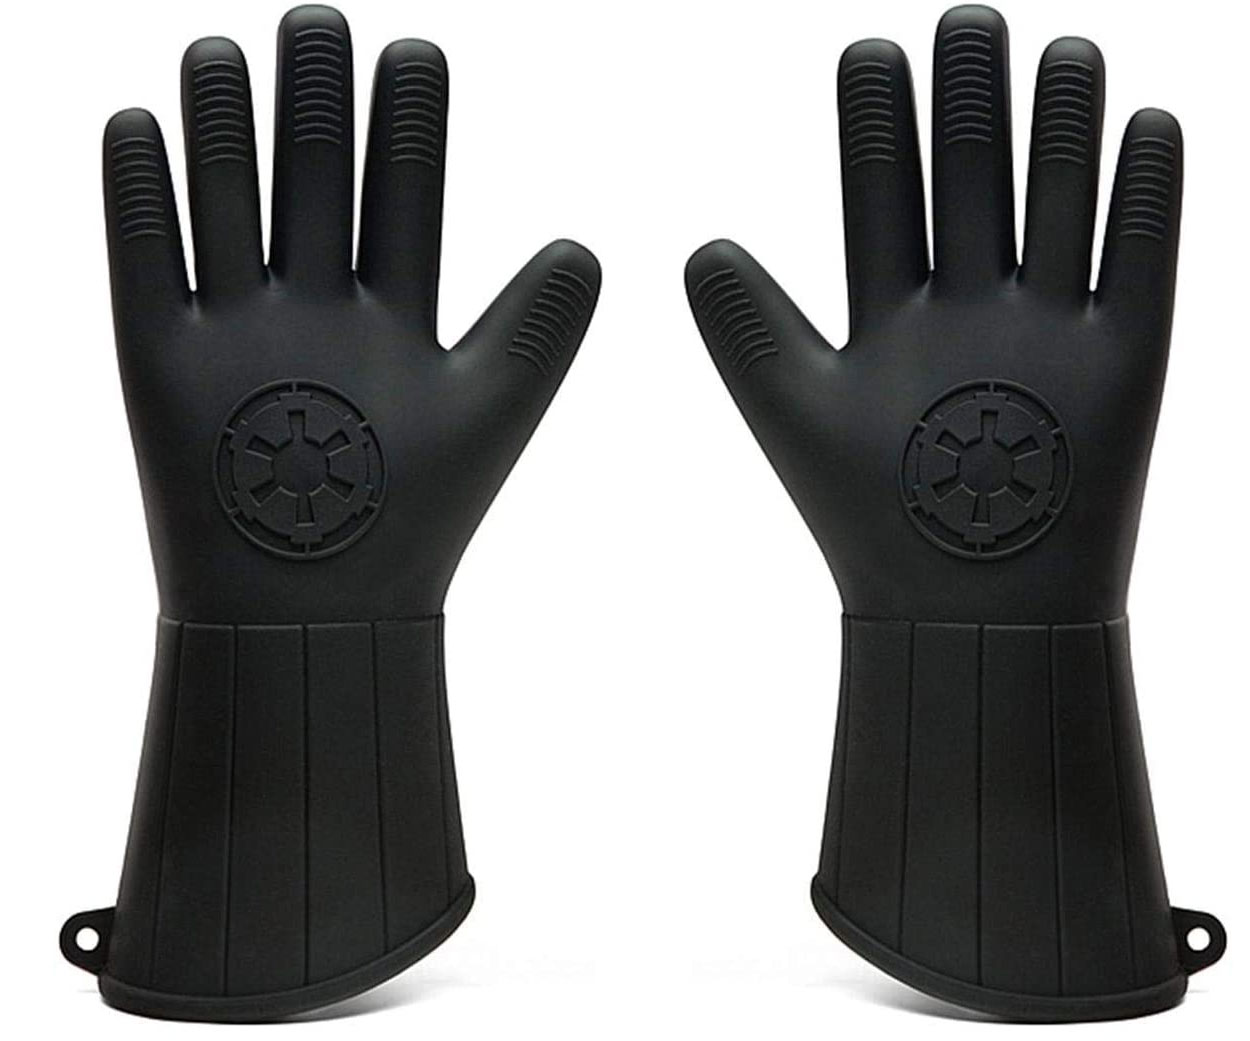 Darth Vader Oven Mitts